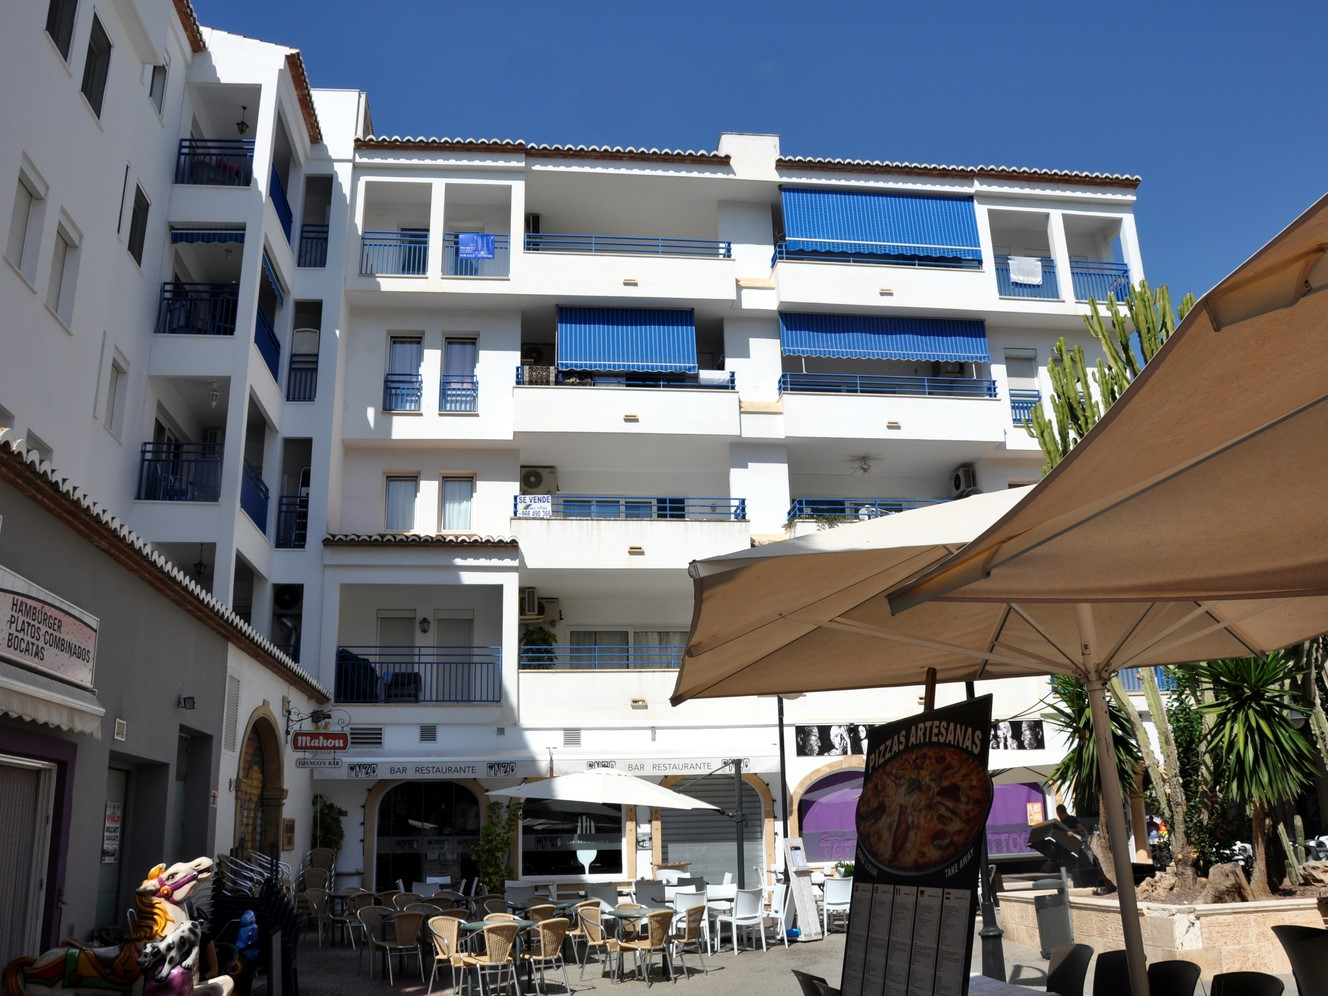 PENTHOUSE APARTMENT OVERLOOKING THE CHURCH SQUARE IN MORAIRA